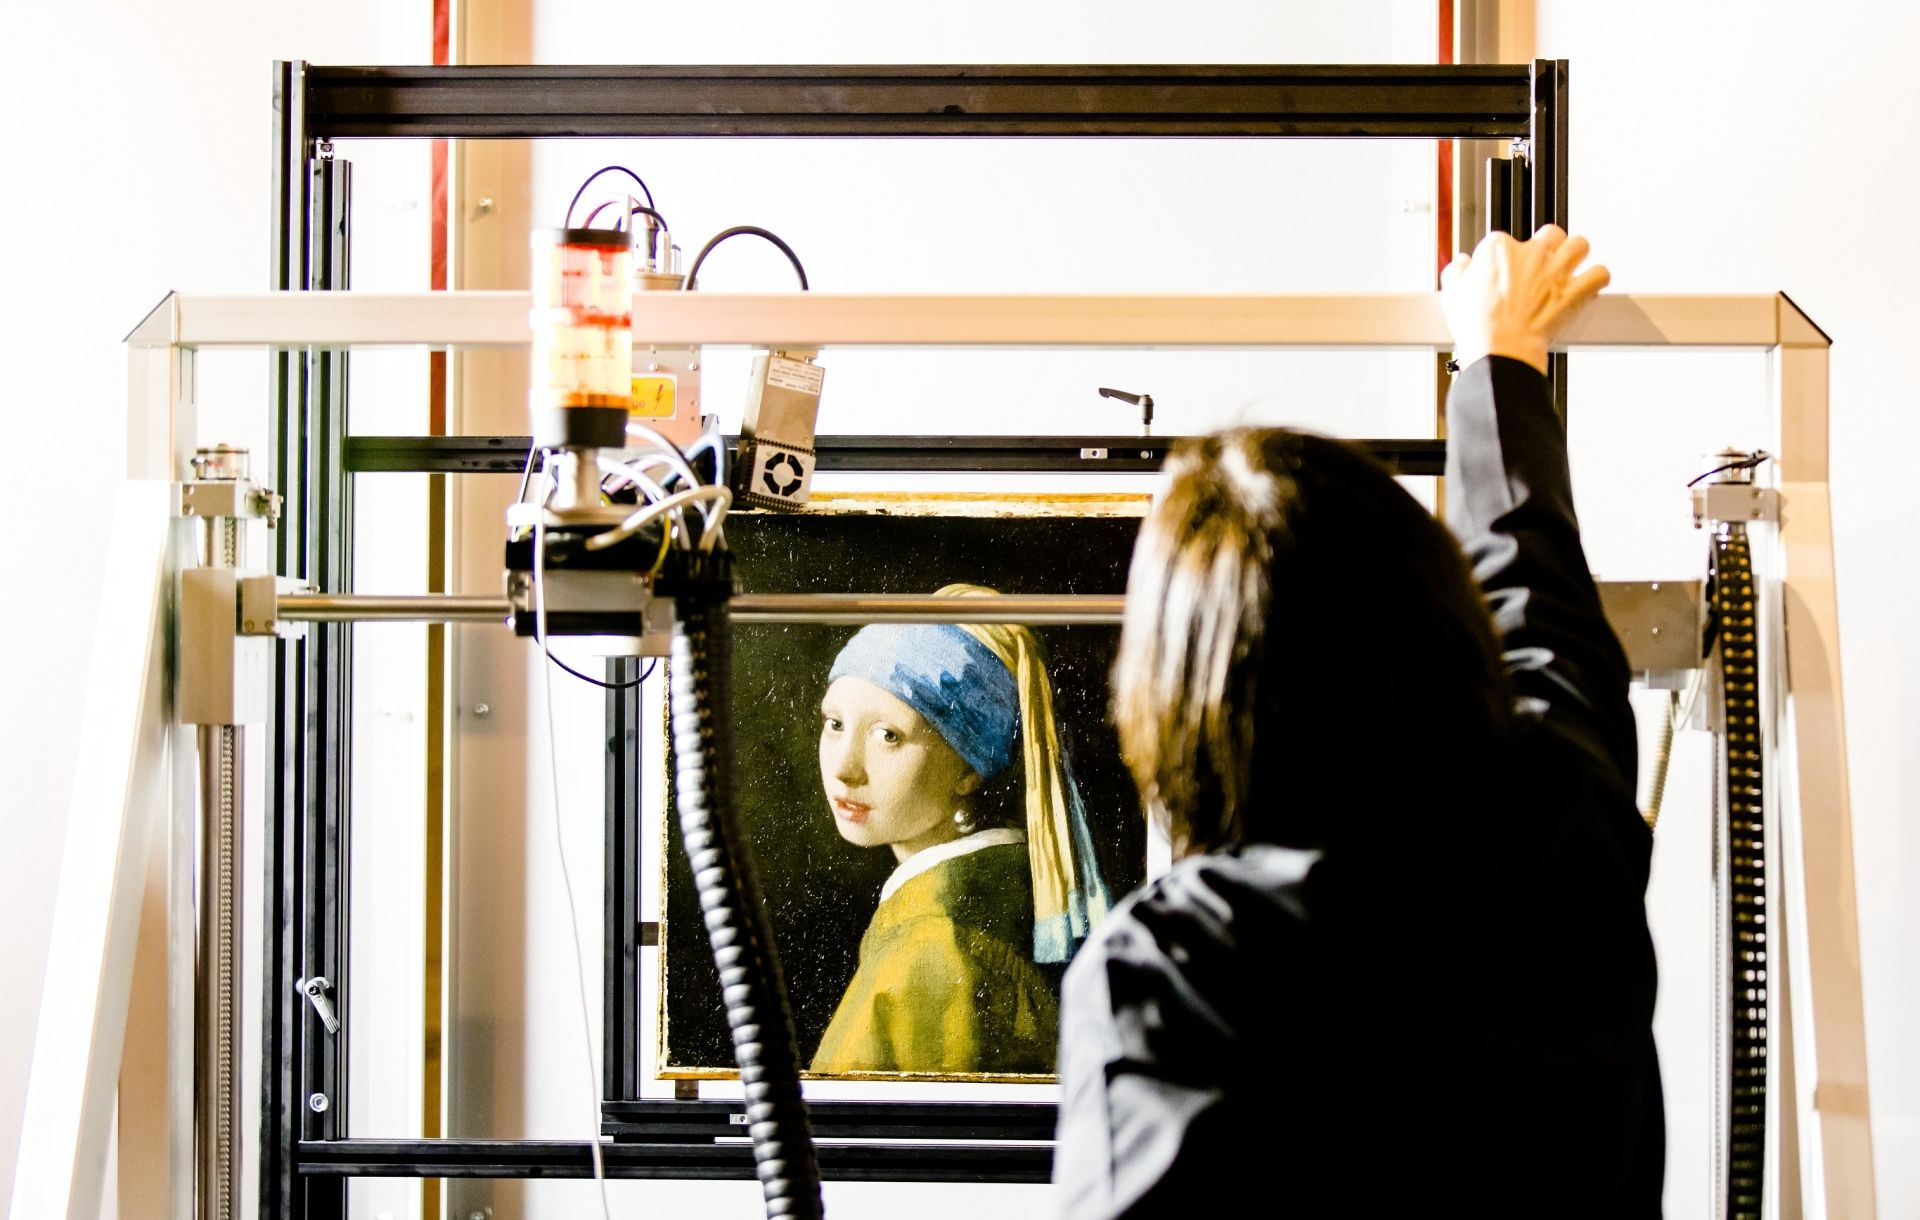 "(FILES) In this file photo taken on february 26, 2018 hows Johannes Vermeer's ""Girl with a Pearl Earring"" painting inside a XRF macro-scanner during a research at The Mauritshuis in The Hague. - New researches carried out on Vermeer's ''Girl with the Pearl Earring'', one of the most famous paintings in the world, has unveiled discoveries that makes it more 'personal' even if the identity of the woman still remains a mystery, announced the museum on April 28, 2020. (Photo by Bart MAAT / ANP / AFP) / Netherla"